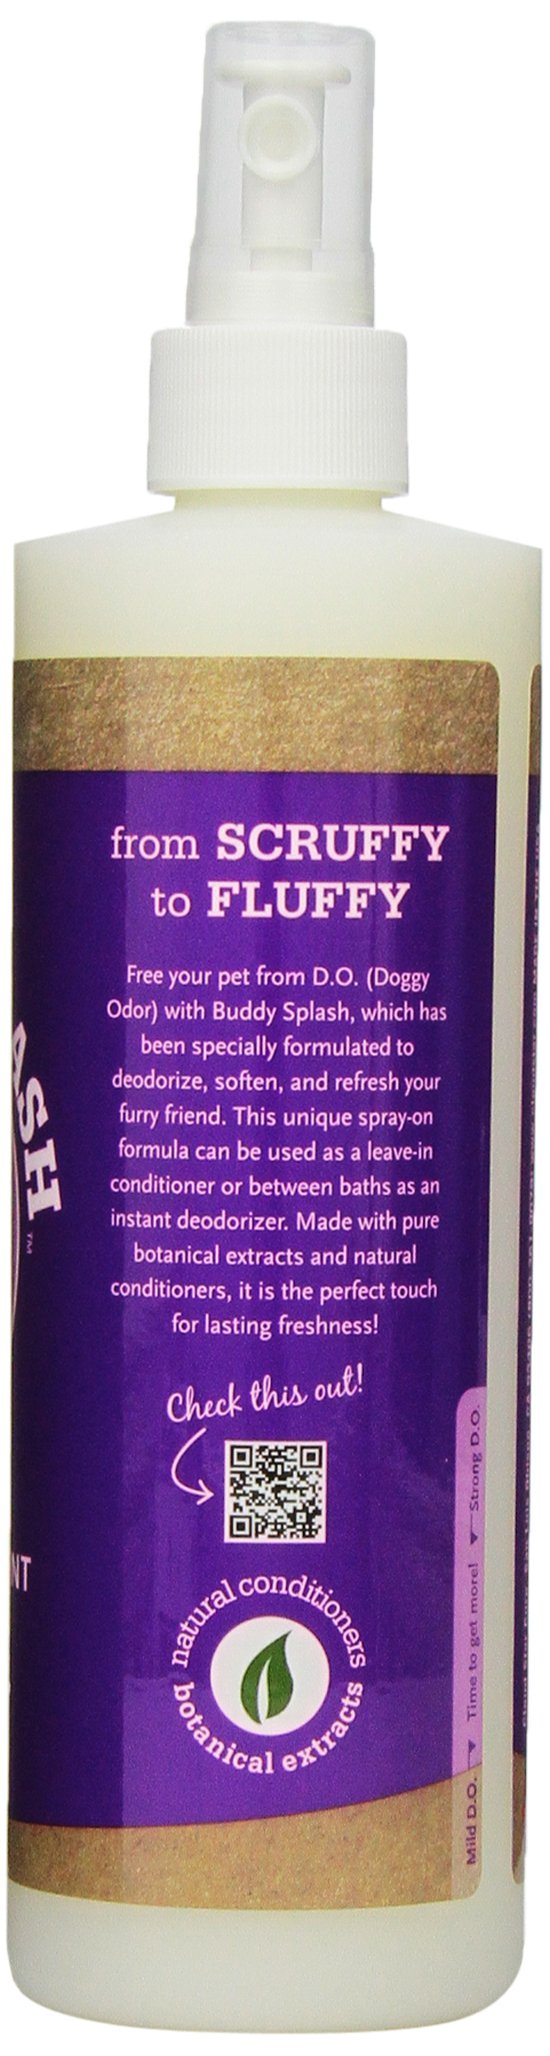 Cloud Star Buddy Splash Dog Spritzer and Conditioner, Lavender/Mint, 16-Ounce